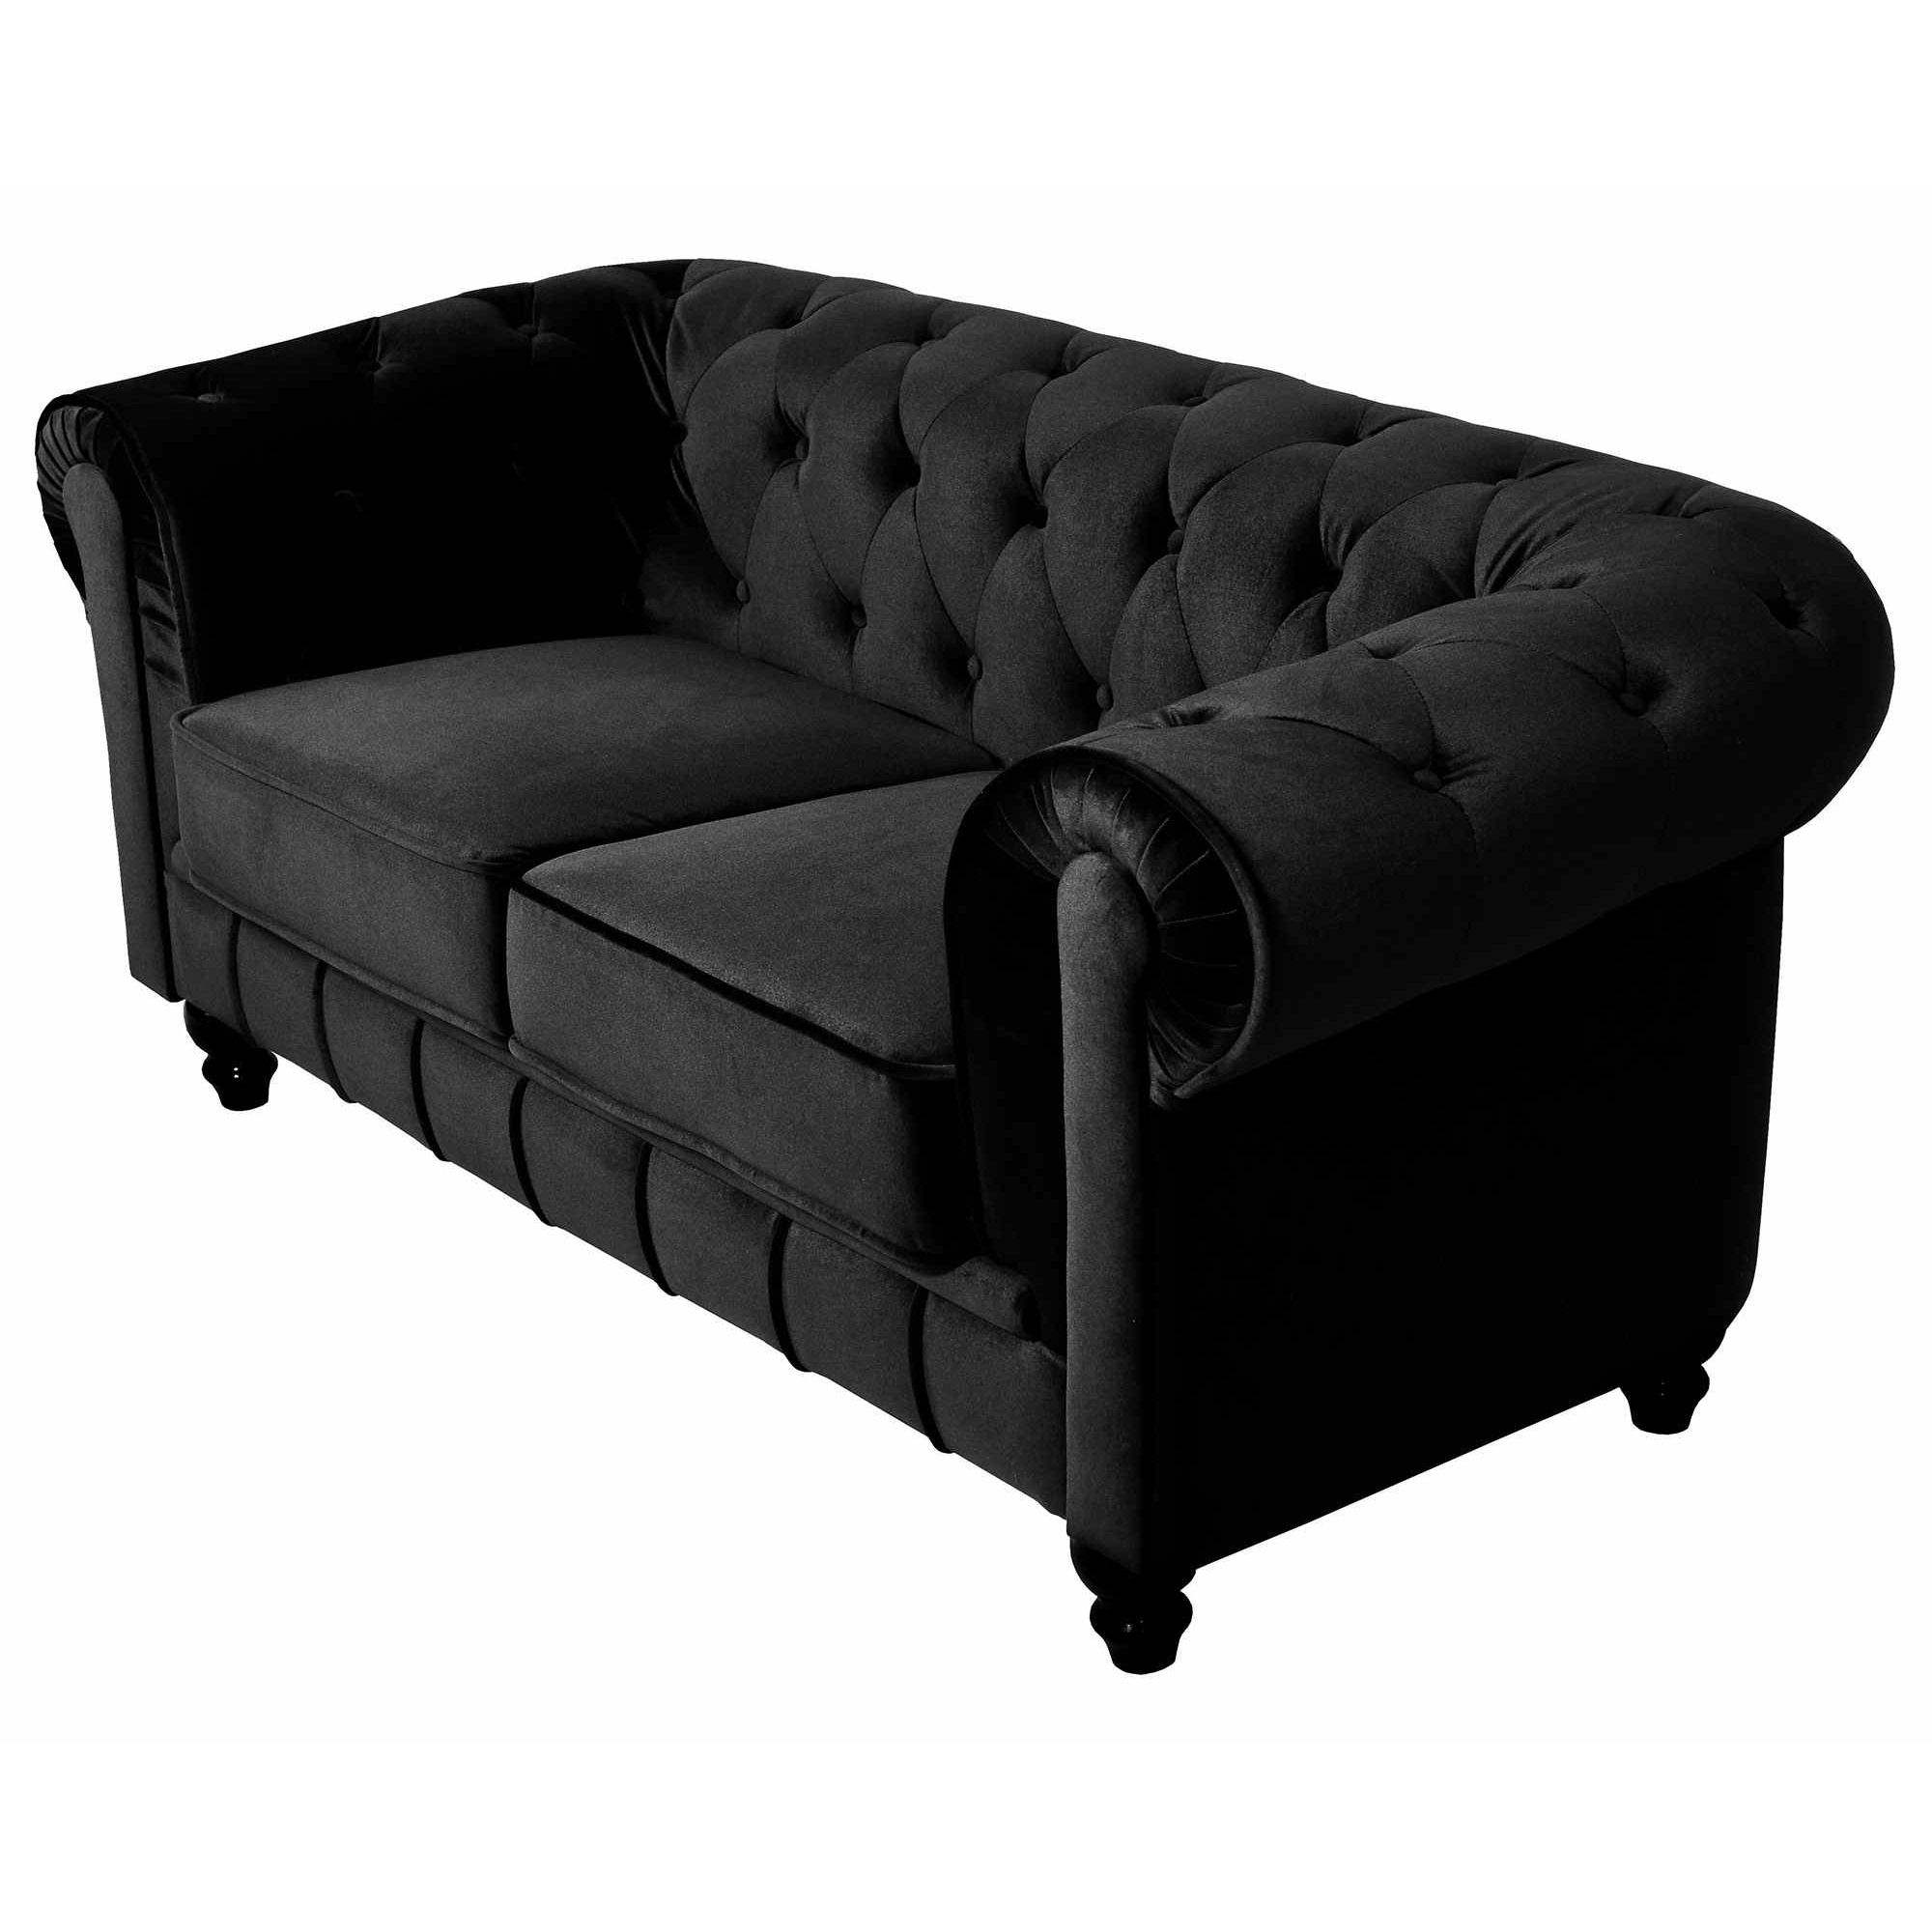 deco in paris canape 2 places velours noir chesterfield can chester 2p velours noir. Black Bedroom Furniture Sets. Home Design Ideas